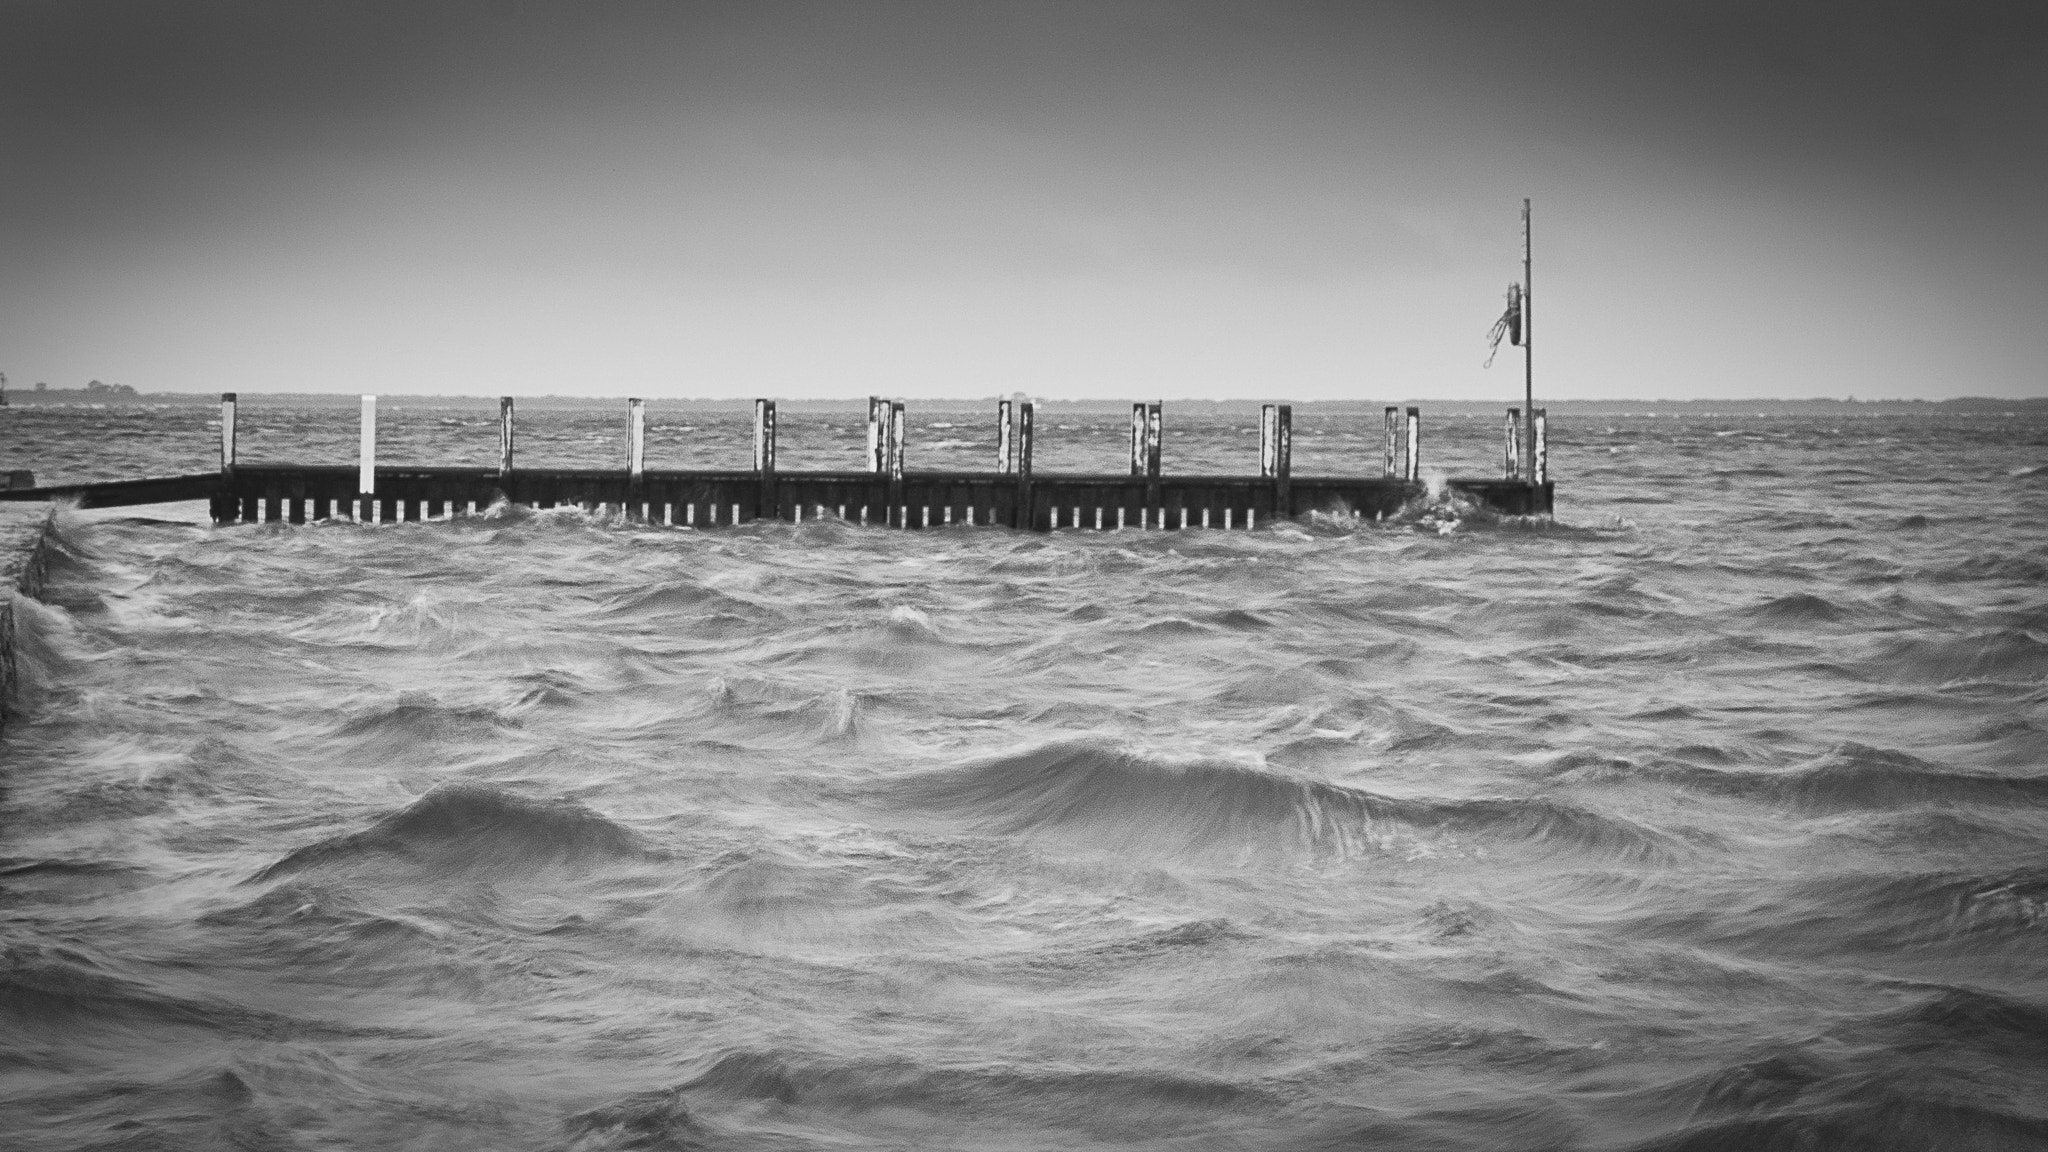 Photograph Windy day on the lake by Peter Mackey on 500px